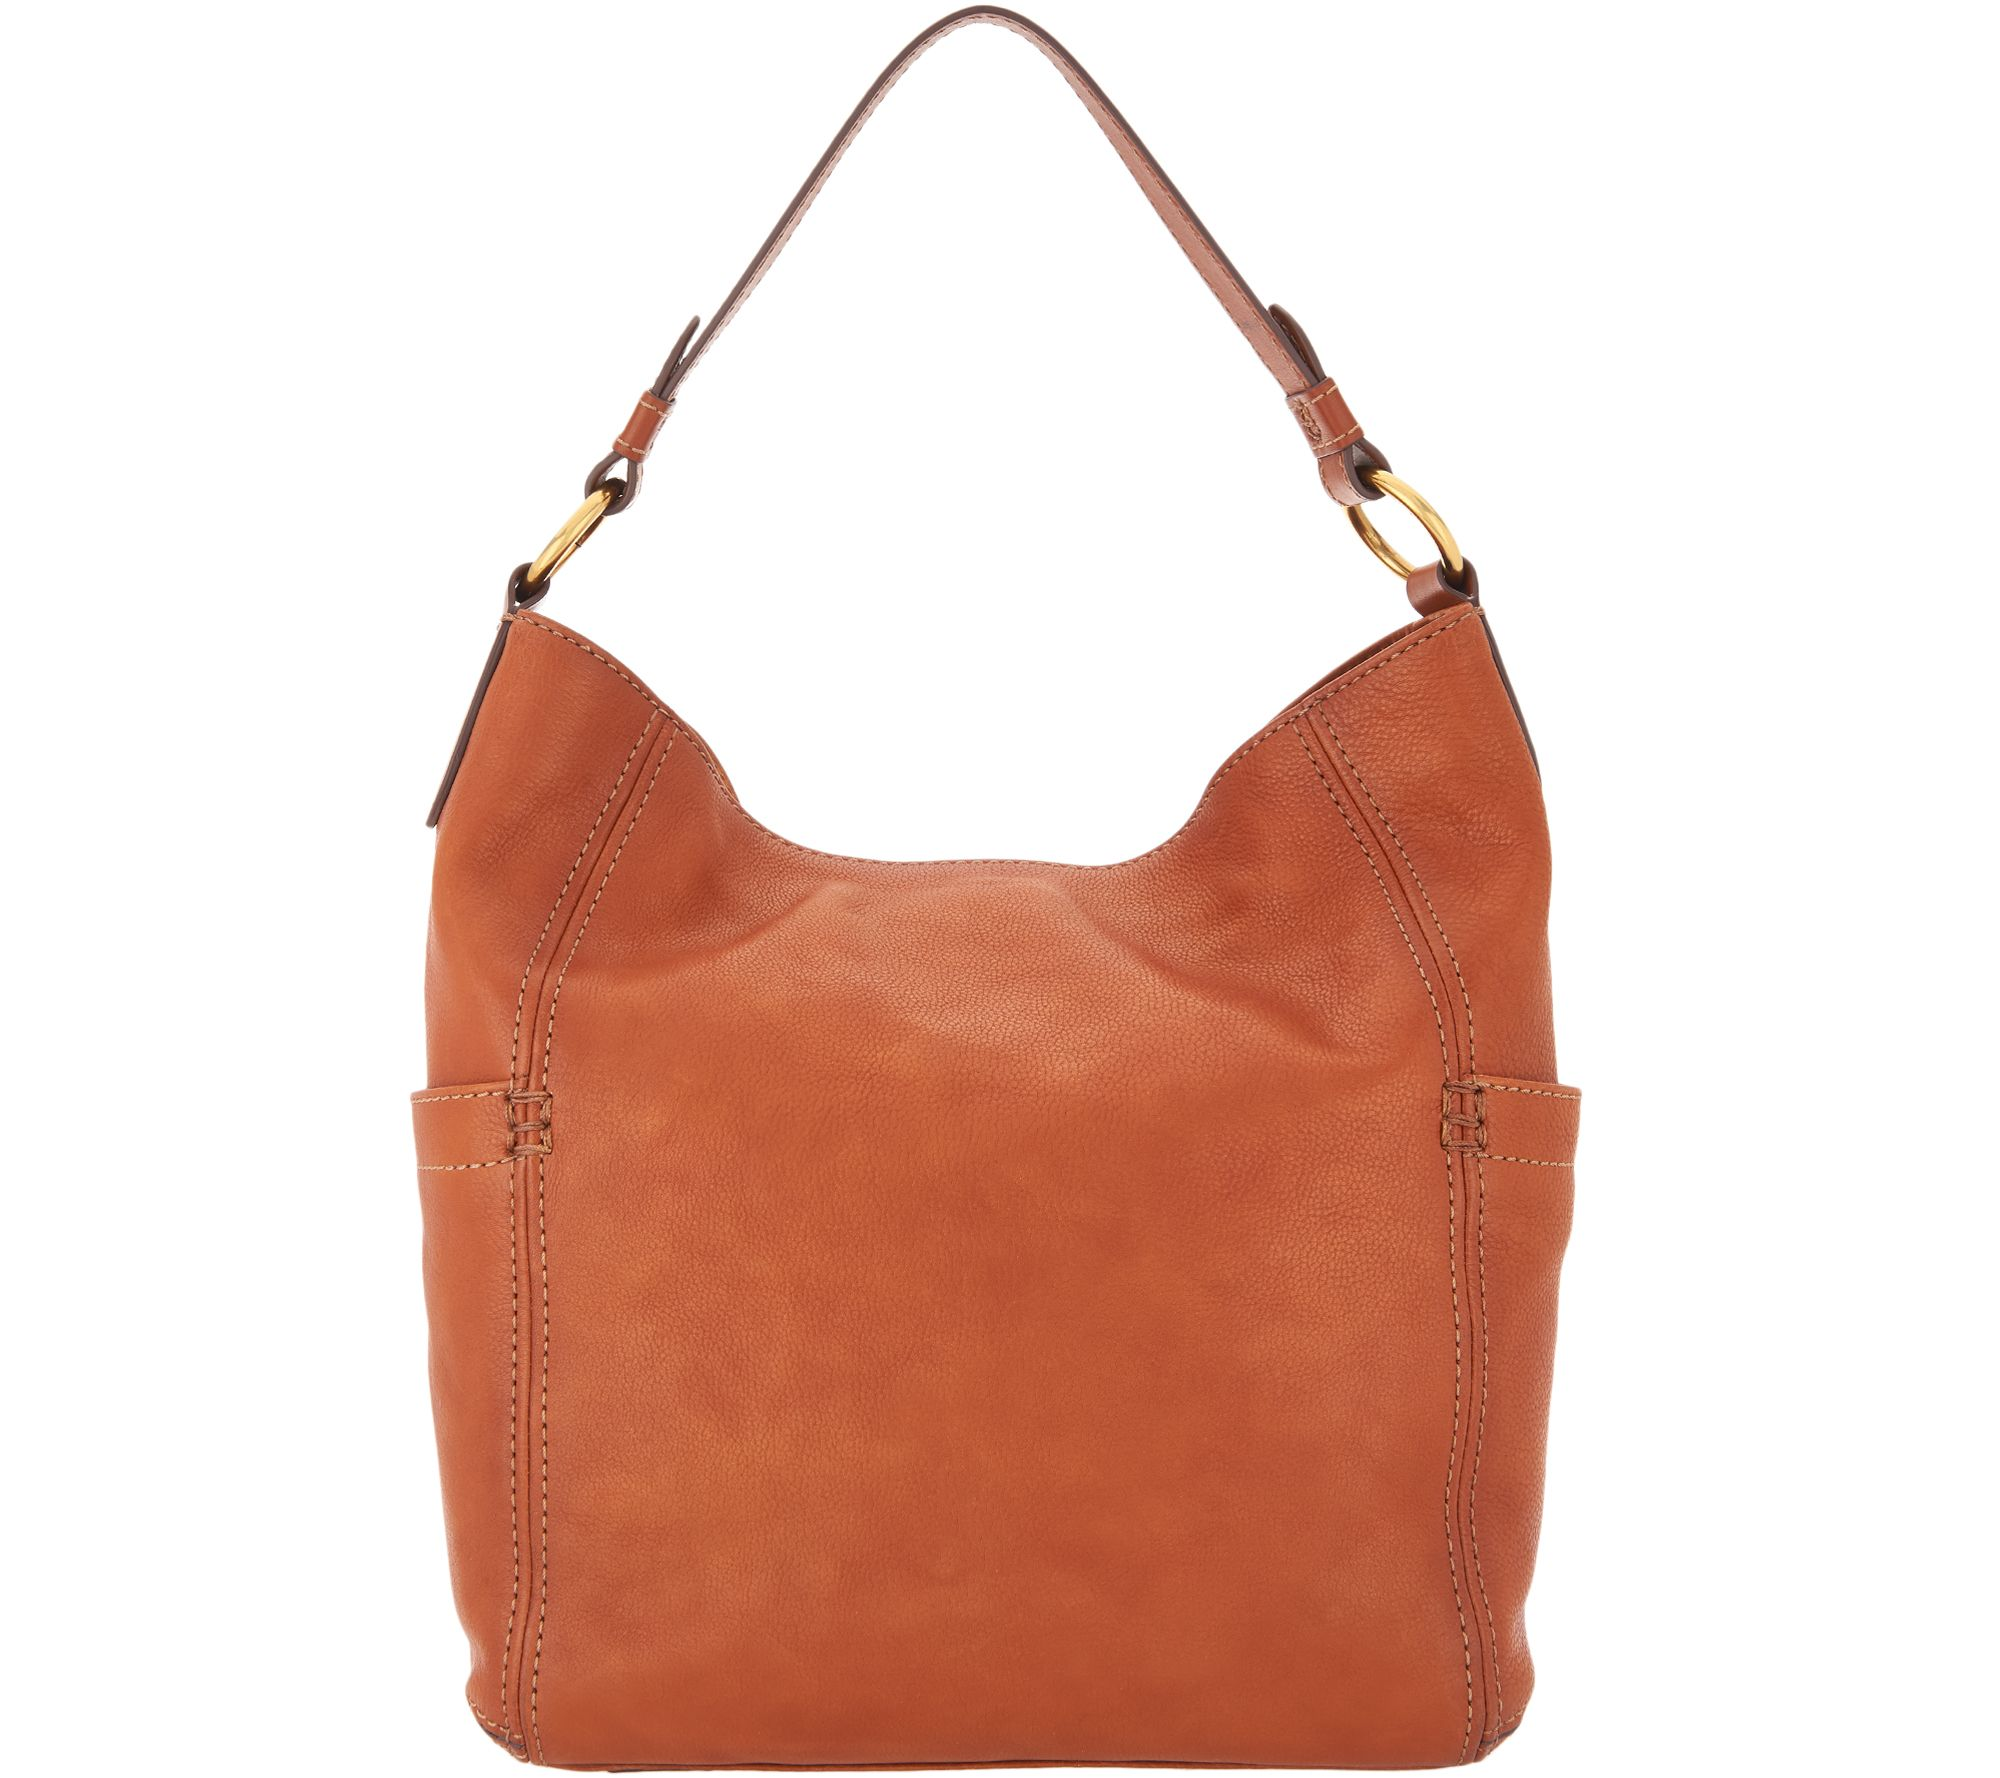 05281b9449 frye   co. Leather Hobo Bag - Adelaide - Page 1 — QVC.com